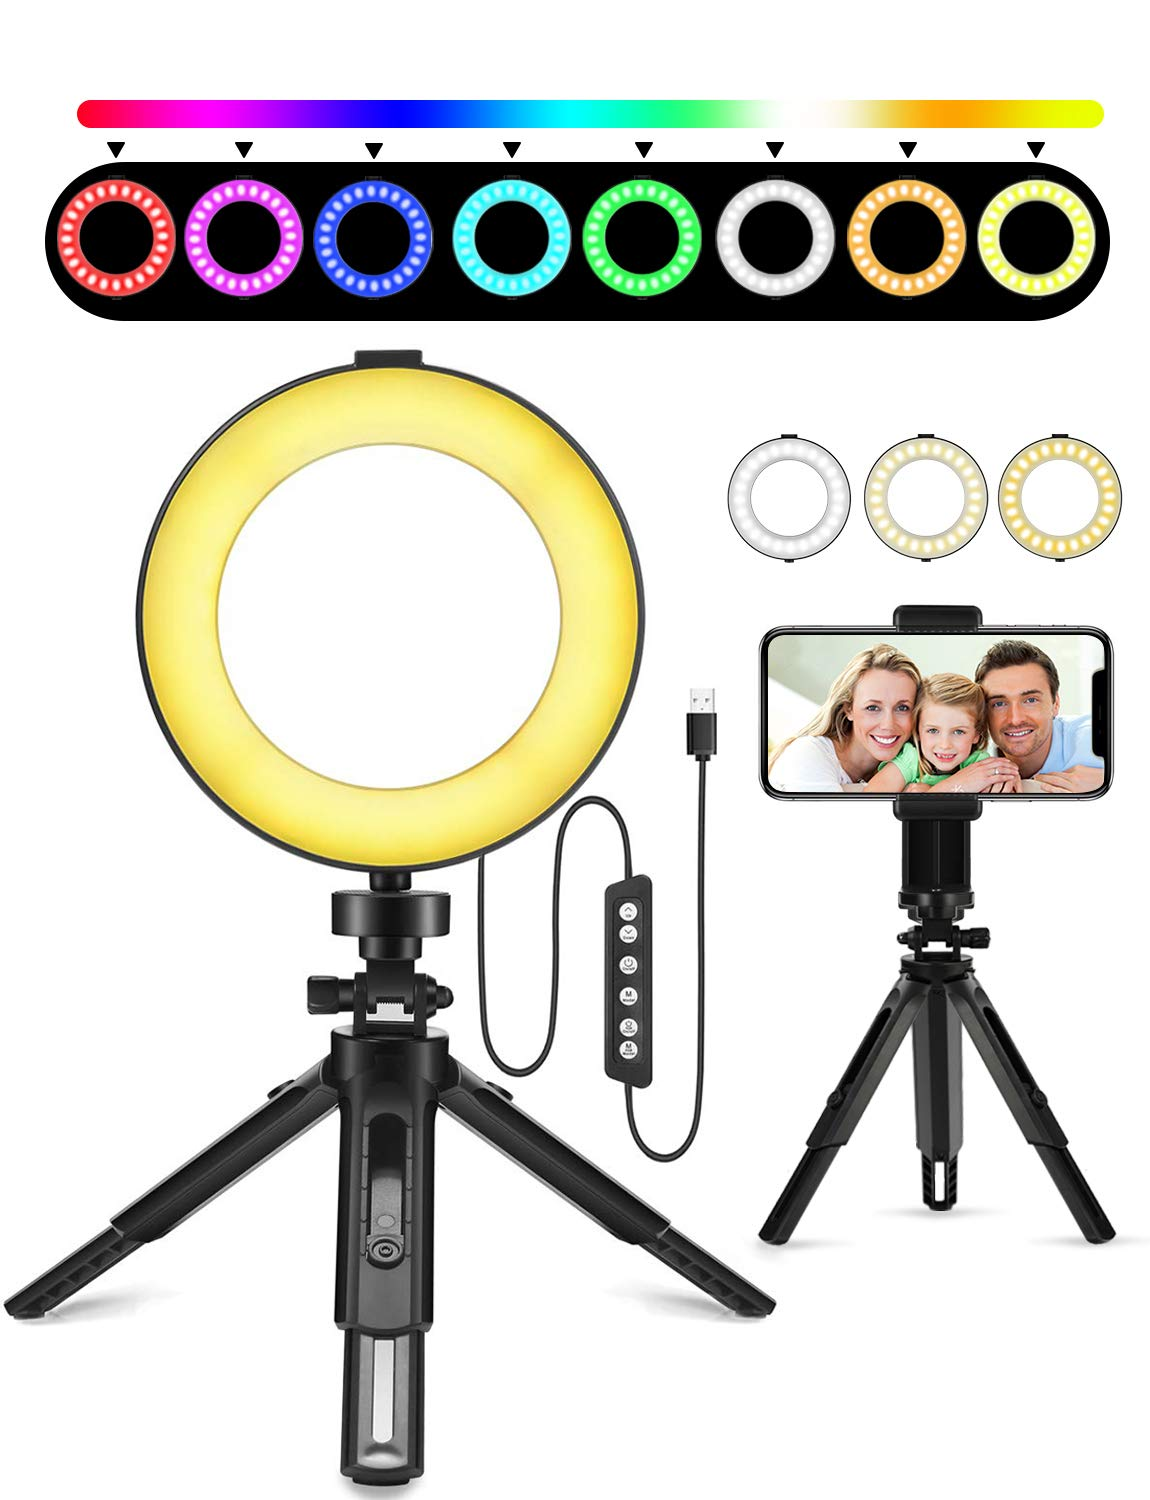 Ring Light 2019 Newest, 6'' Dimmable RGB O Ring Light with Tripod Stand and Cell Phone Holder for Makeup, YouTube Video, Self-Portrait, Mini Desktop Led Ring Light Selfie Light Ring for Smartphone